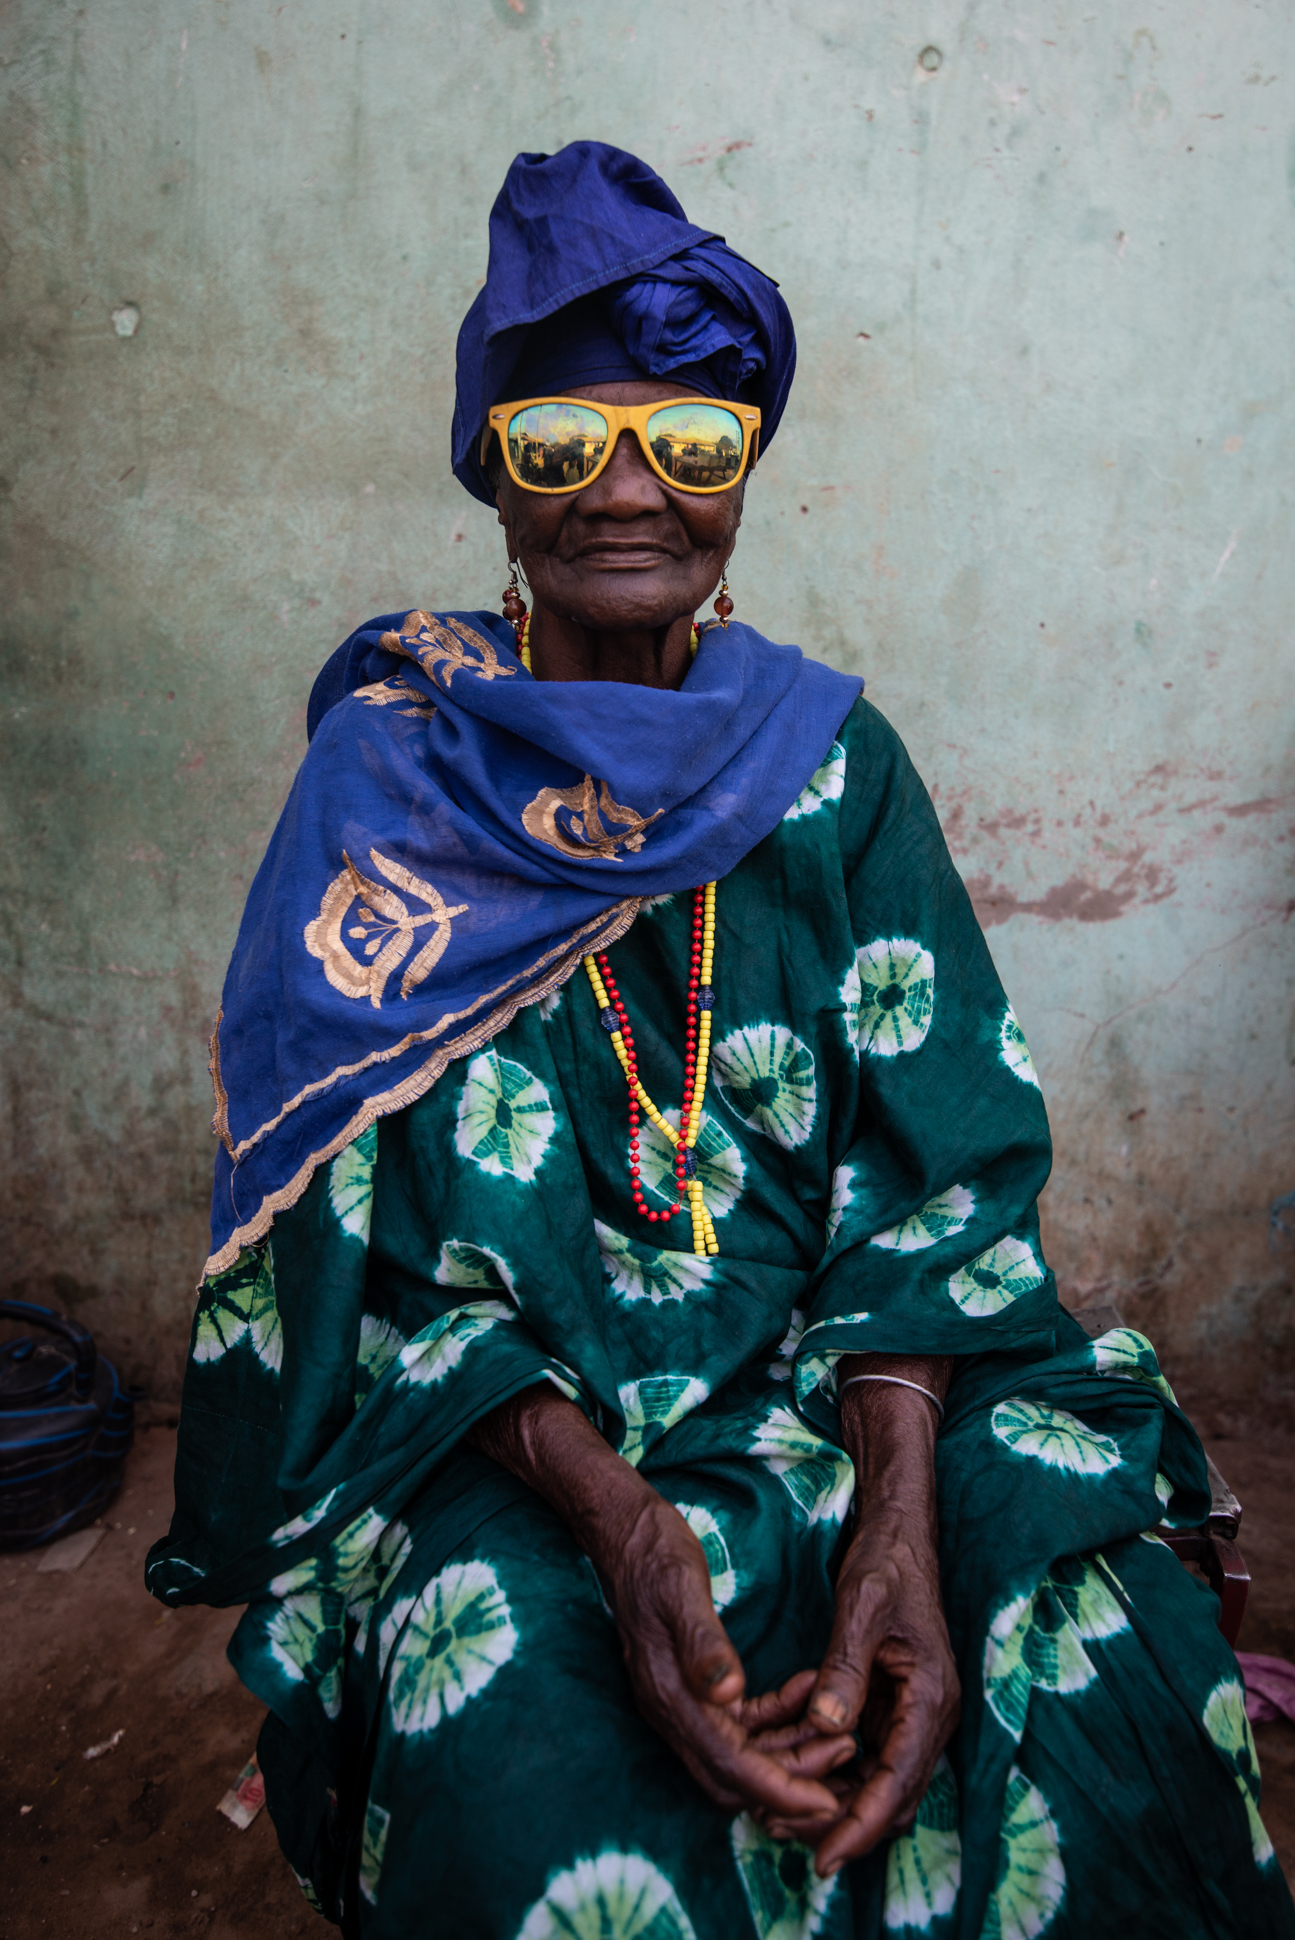 Portrait of an old lady wearing yellow sunglasses in Gunjur, the Gambia. Portraitphotography by Ellis photography.